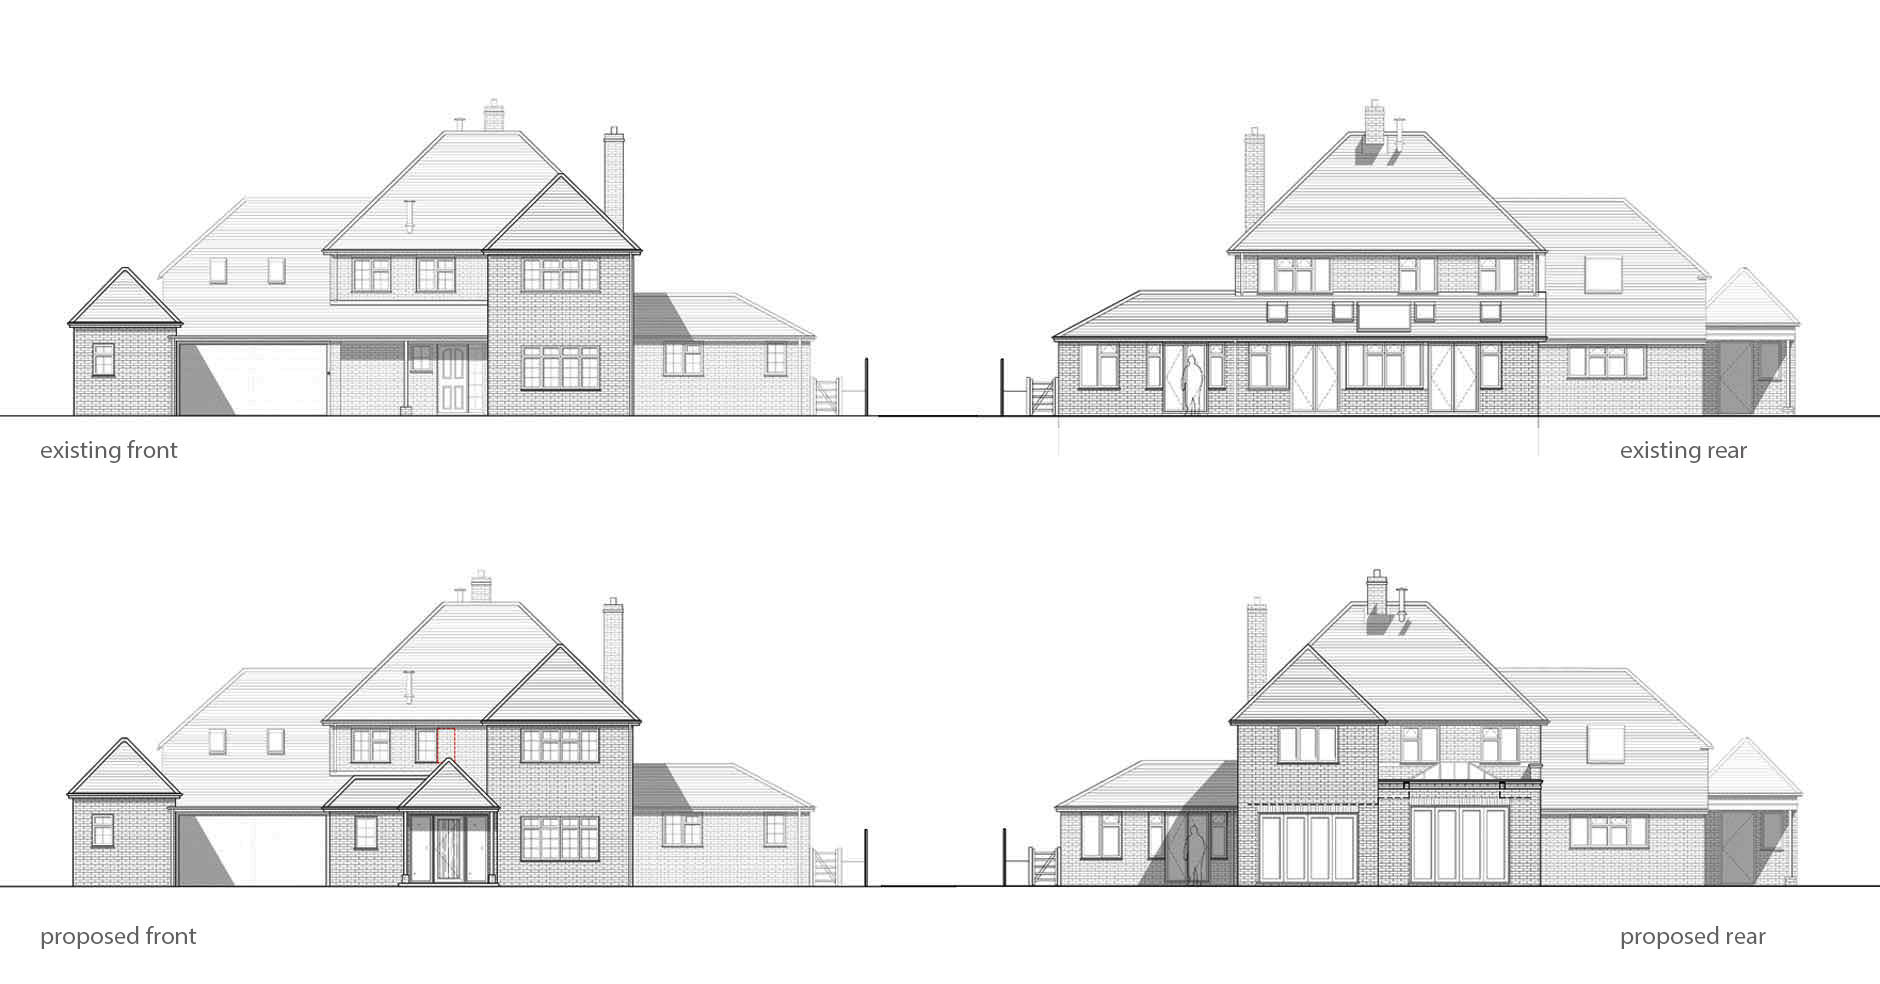 Linden Lodge existing - proposed